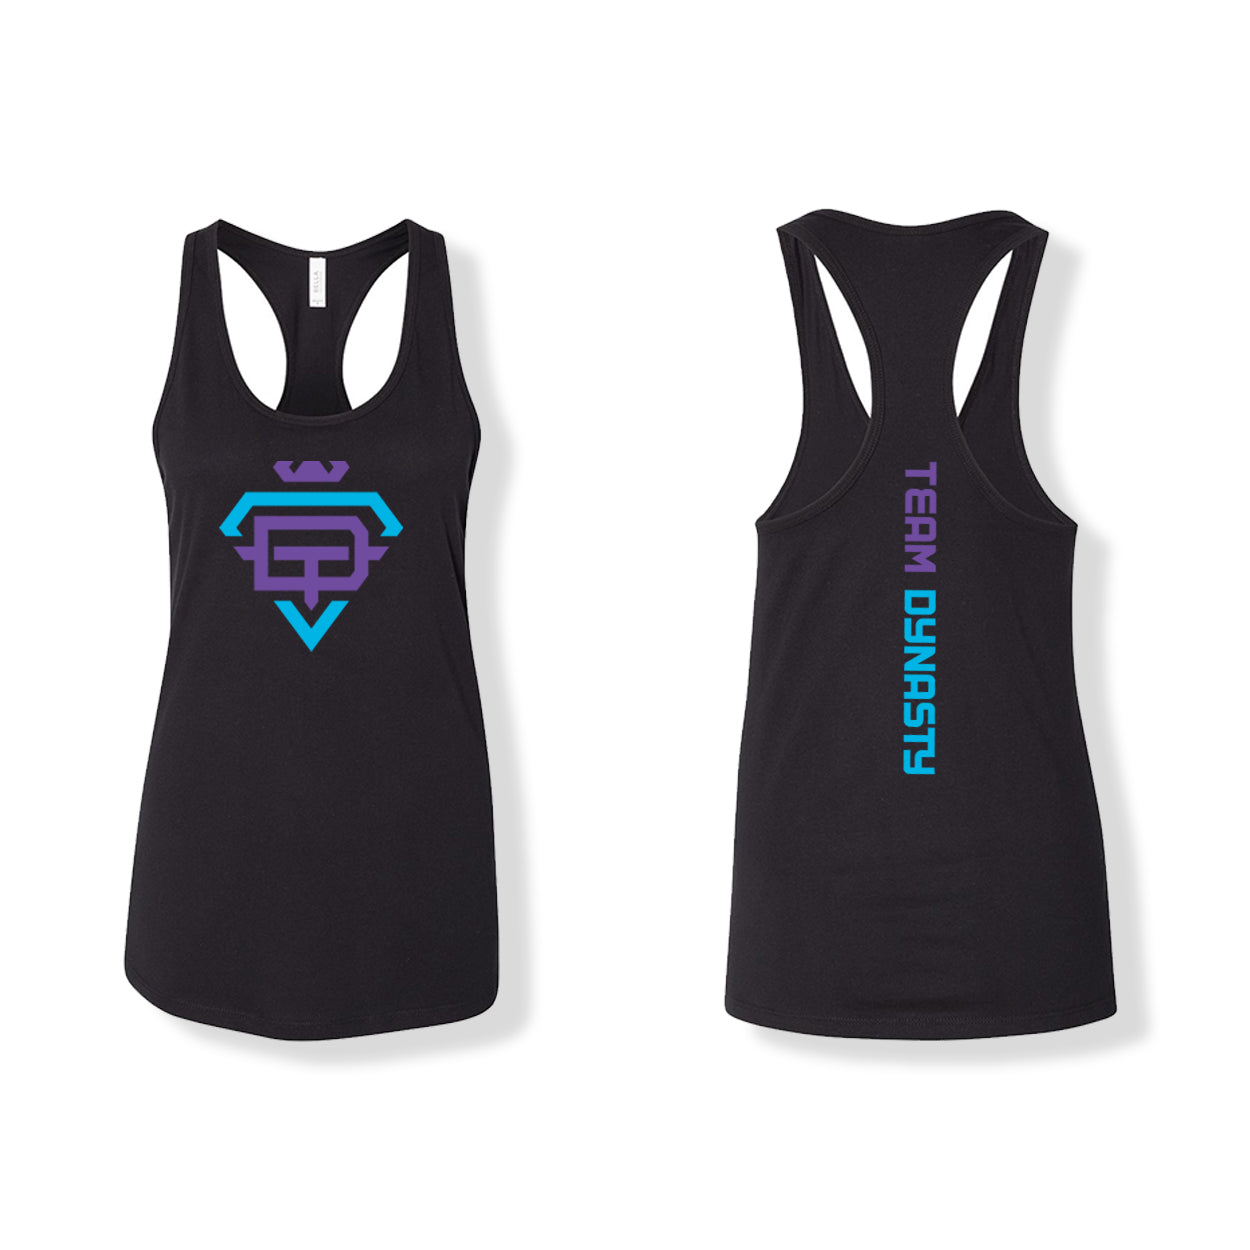 Tank Top - Black Team Dynasty